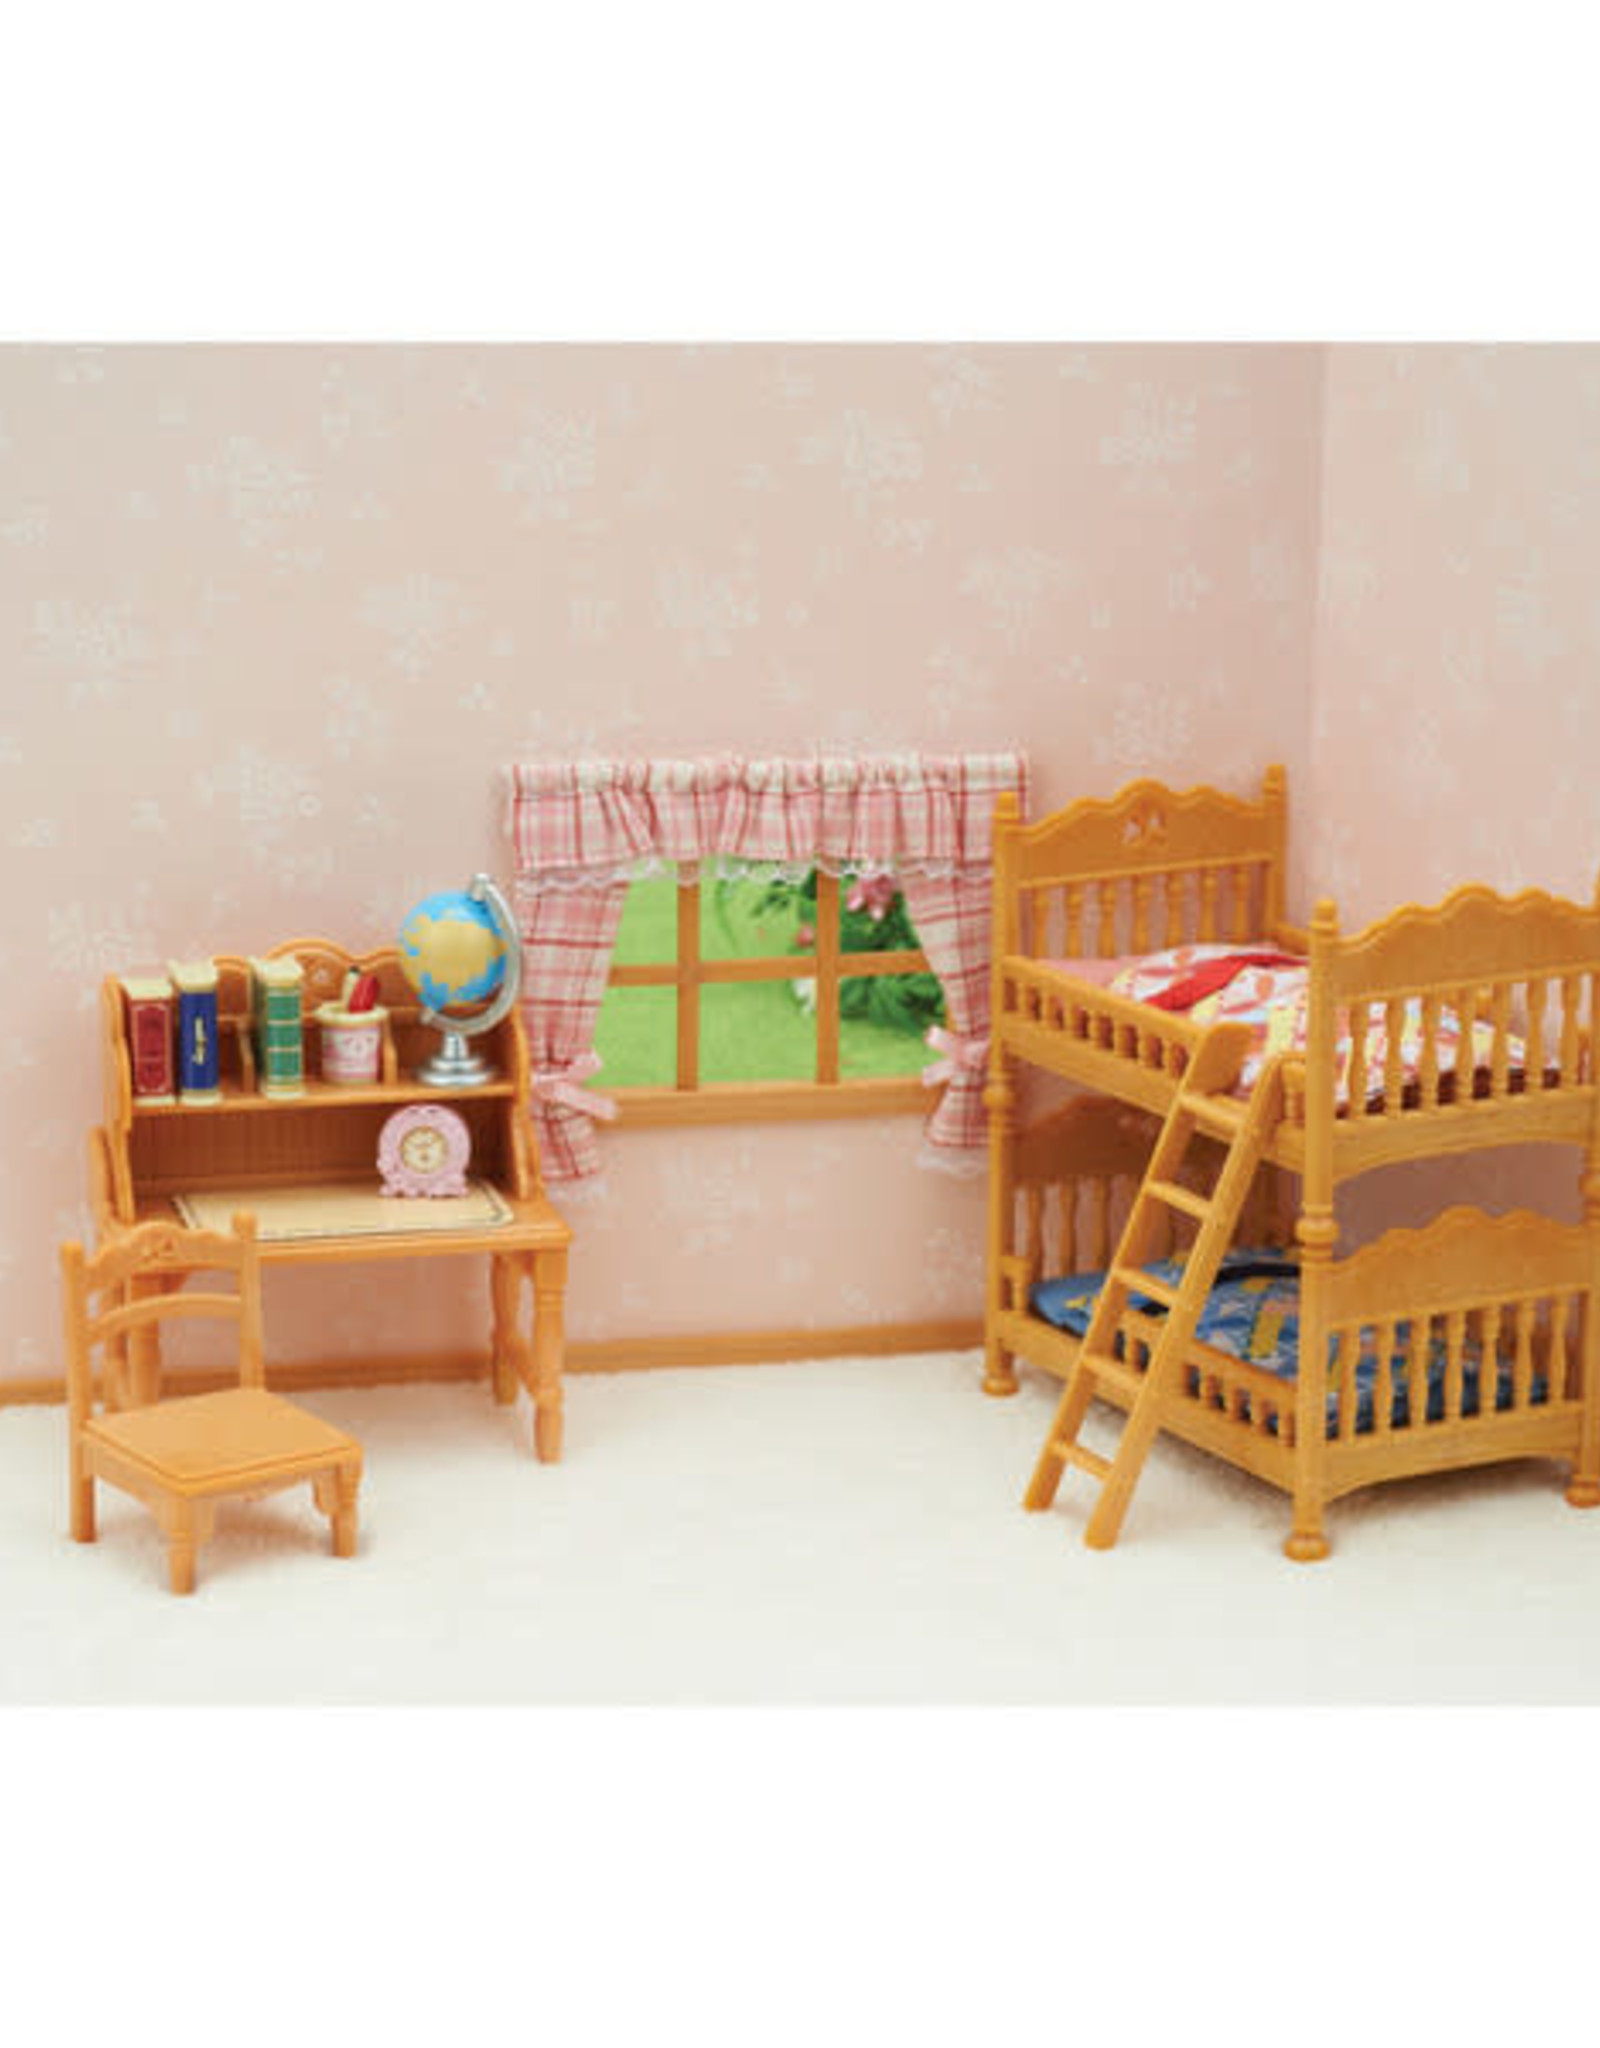 Calico Critters CC Children's Bedroom Set with Bunk Beds